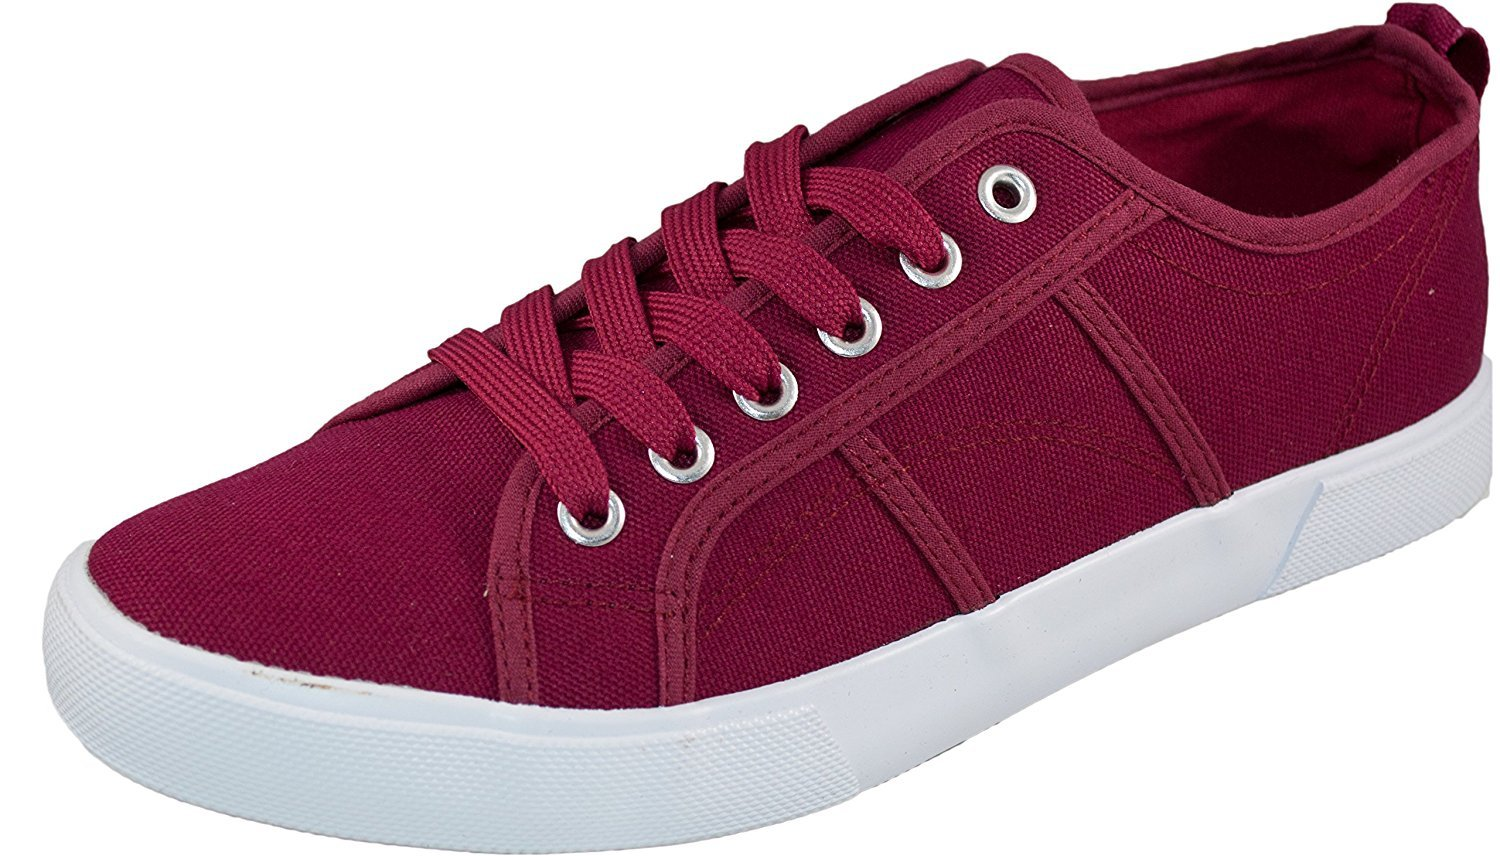 womens low top canvas tennis sneaker shoe basic athletic